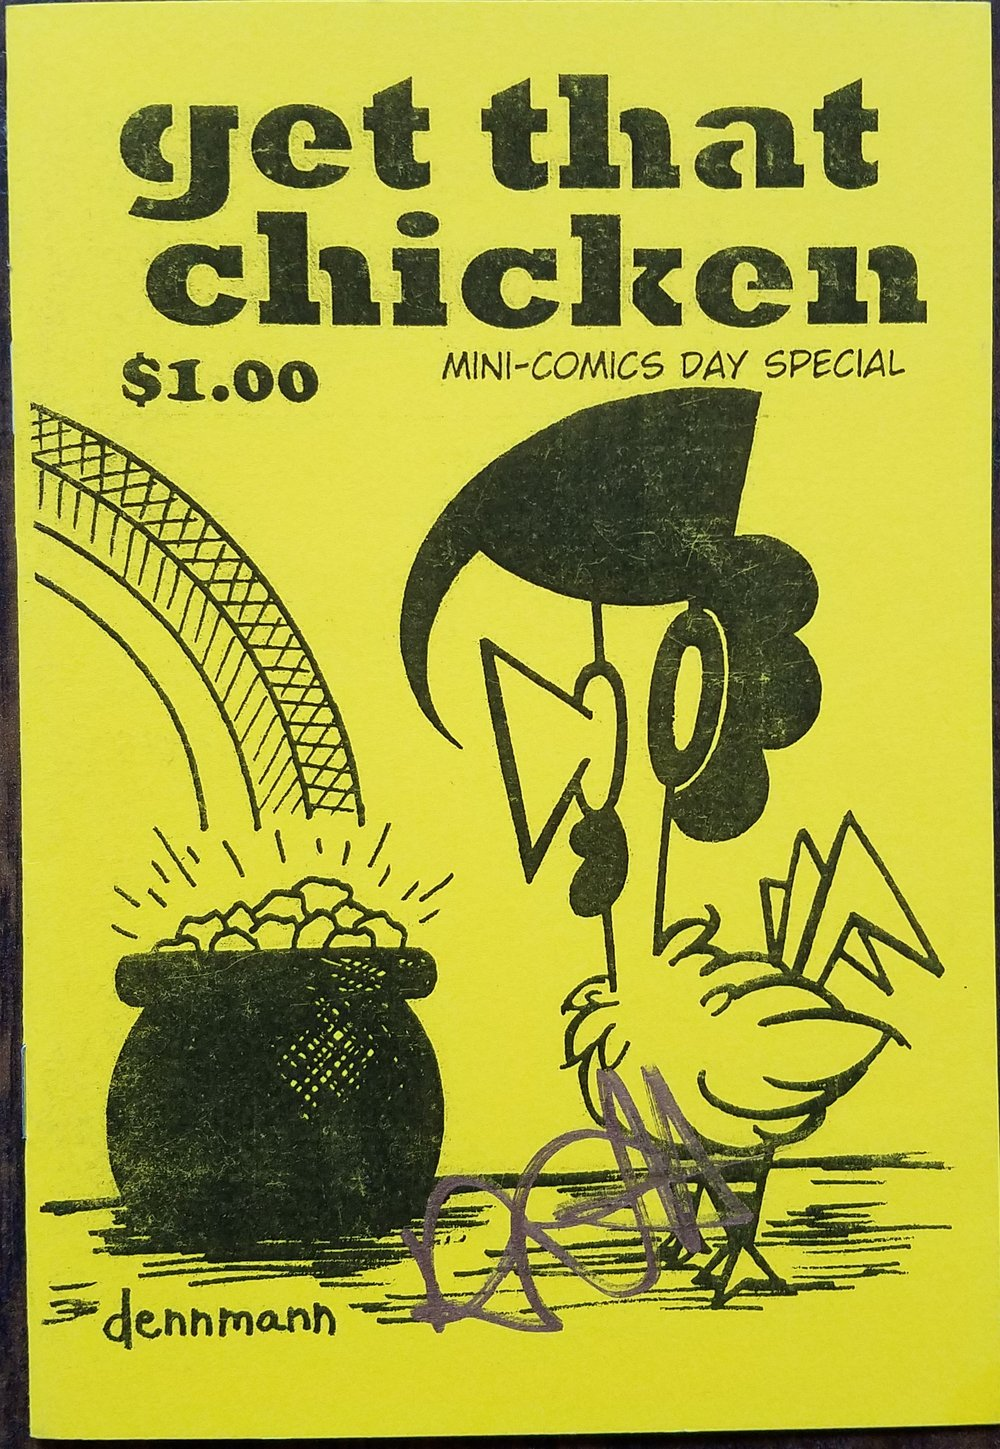 """Get That Chicken Mini-Comics Day Special by Denny """"Dennmann"""" Riccelli"""